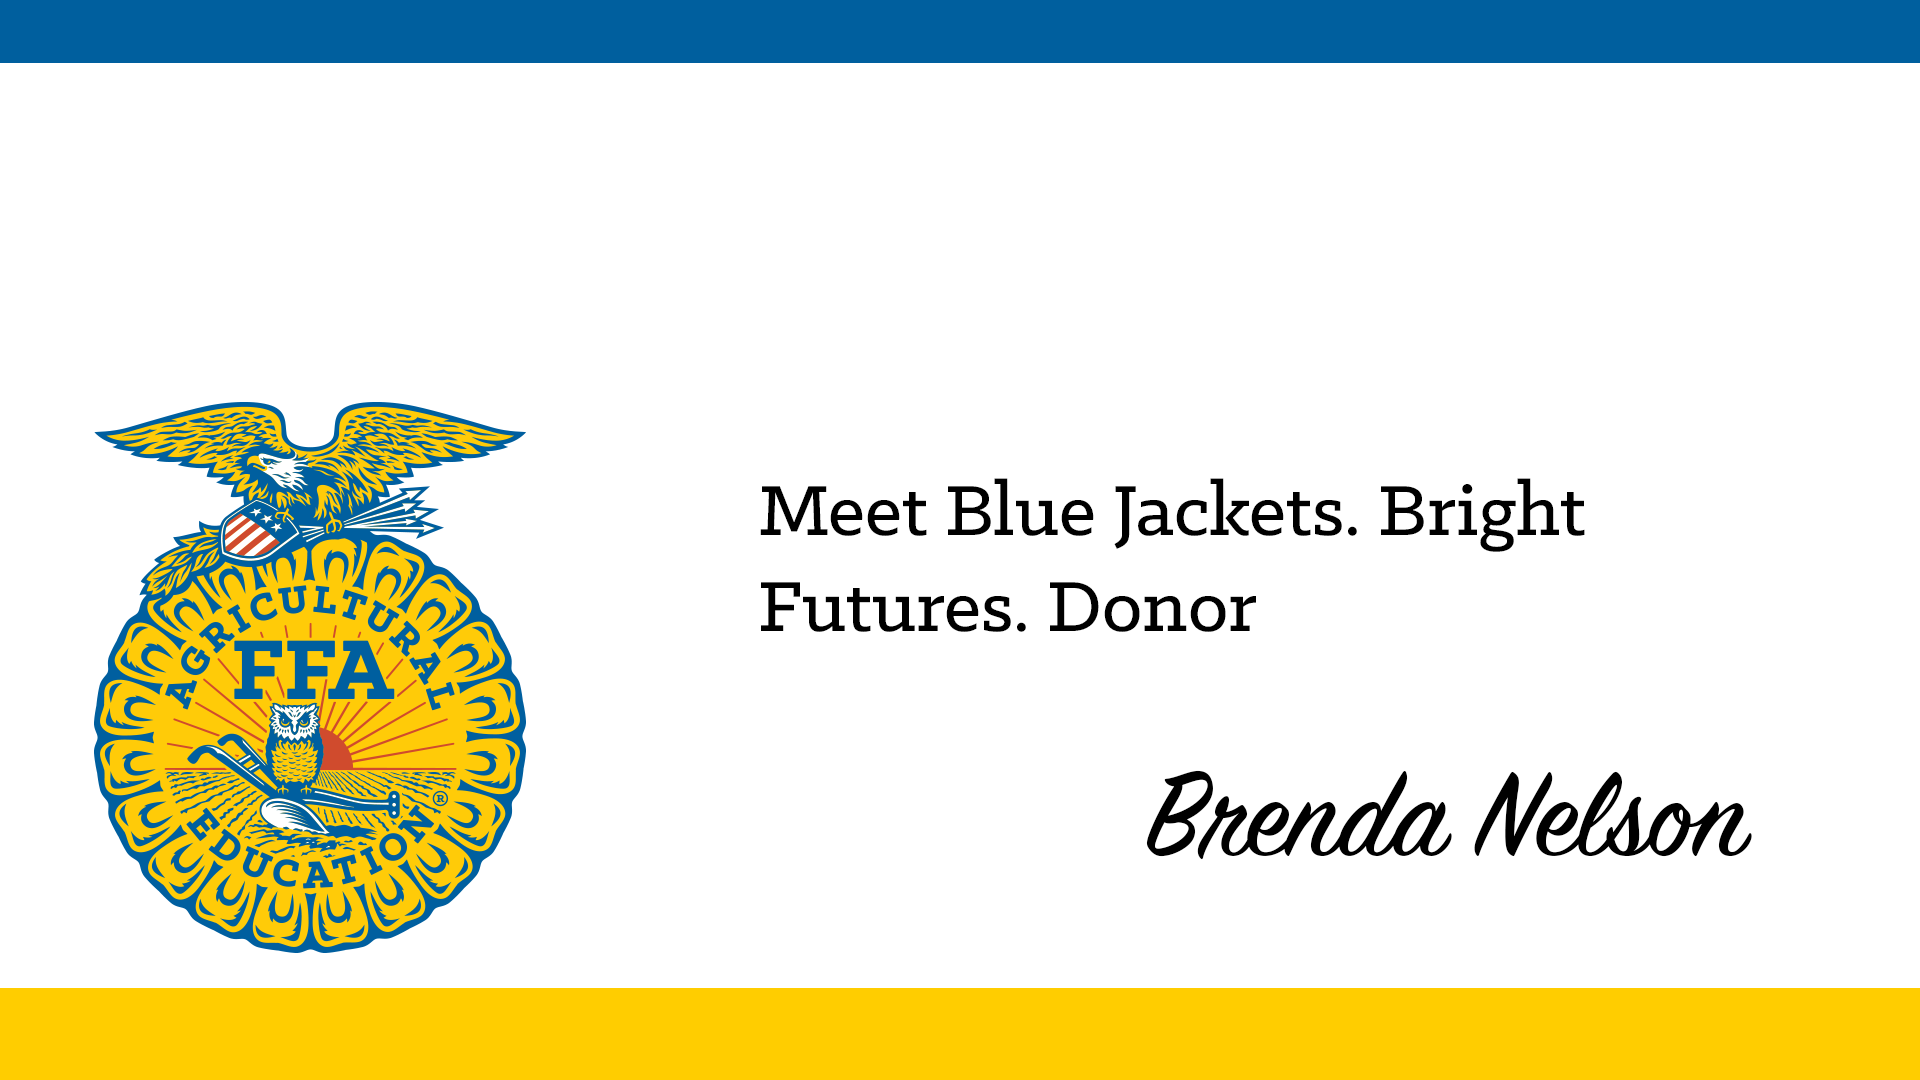 Blue Jackets. Bright Futures. Program Donor